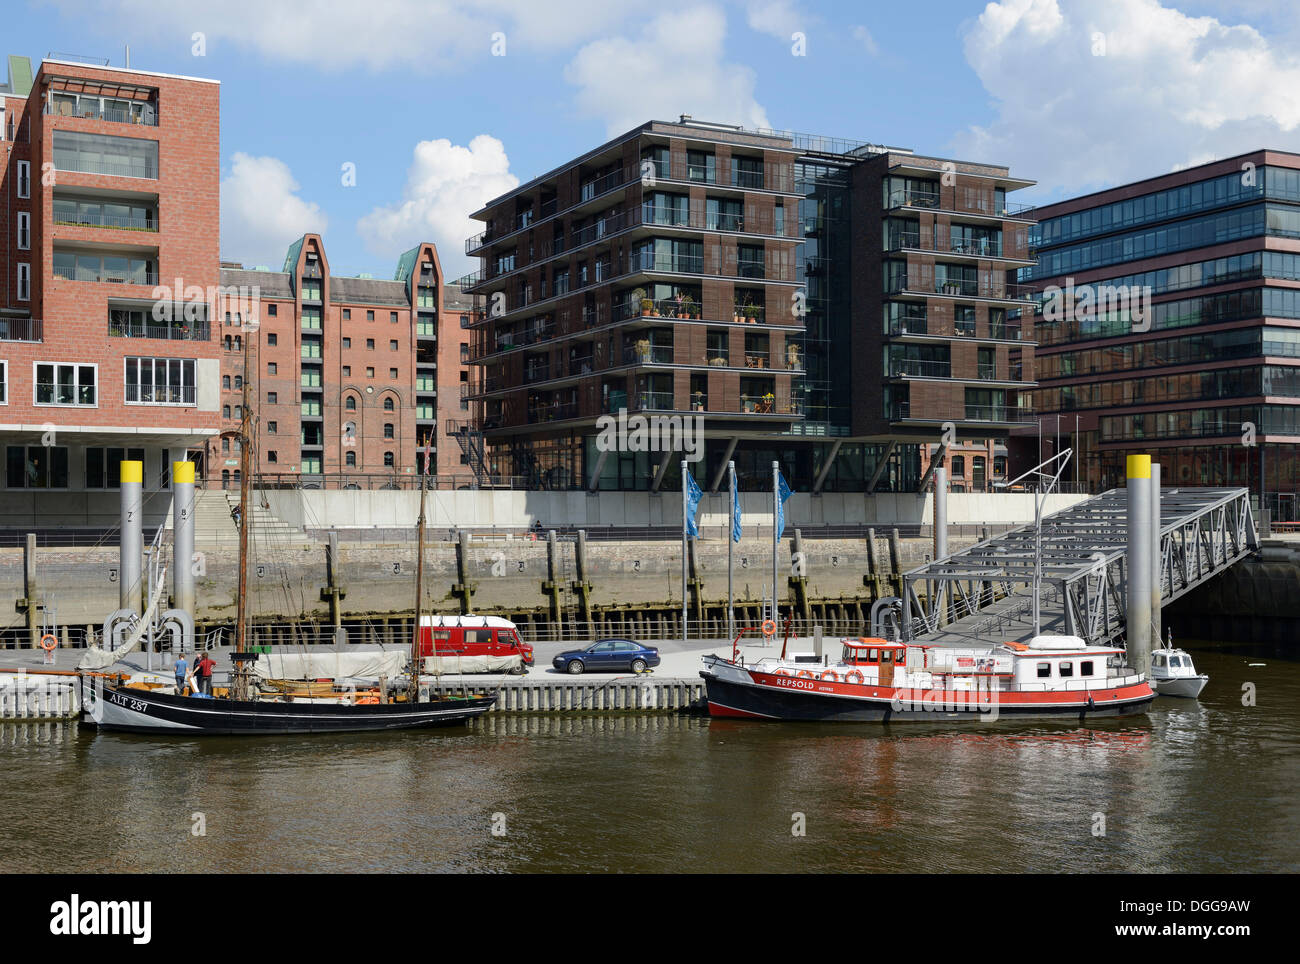 Ships moored at Tall Ship Harbour, Traditionsschiffhafen harbour, historic harbour with modern residential and office buildings - Stock Image